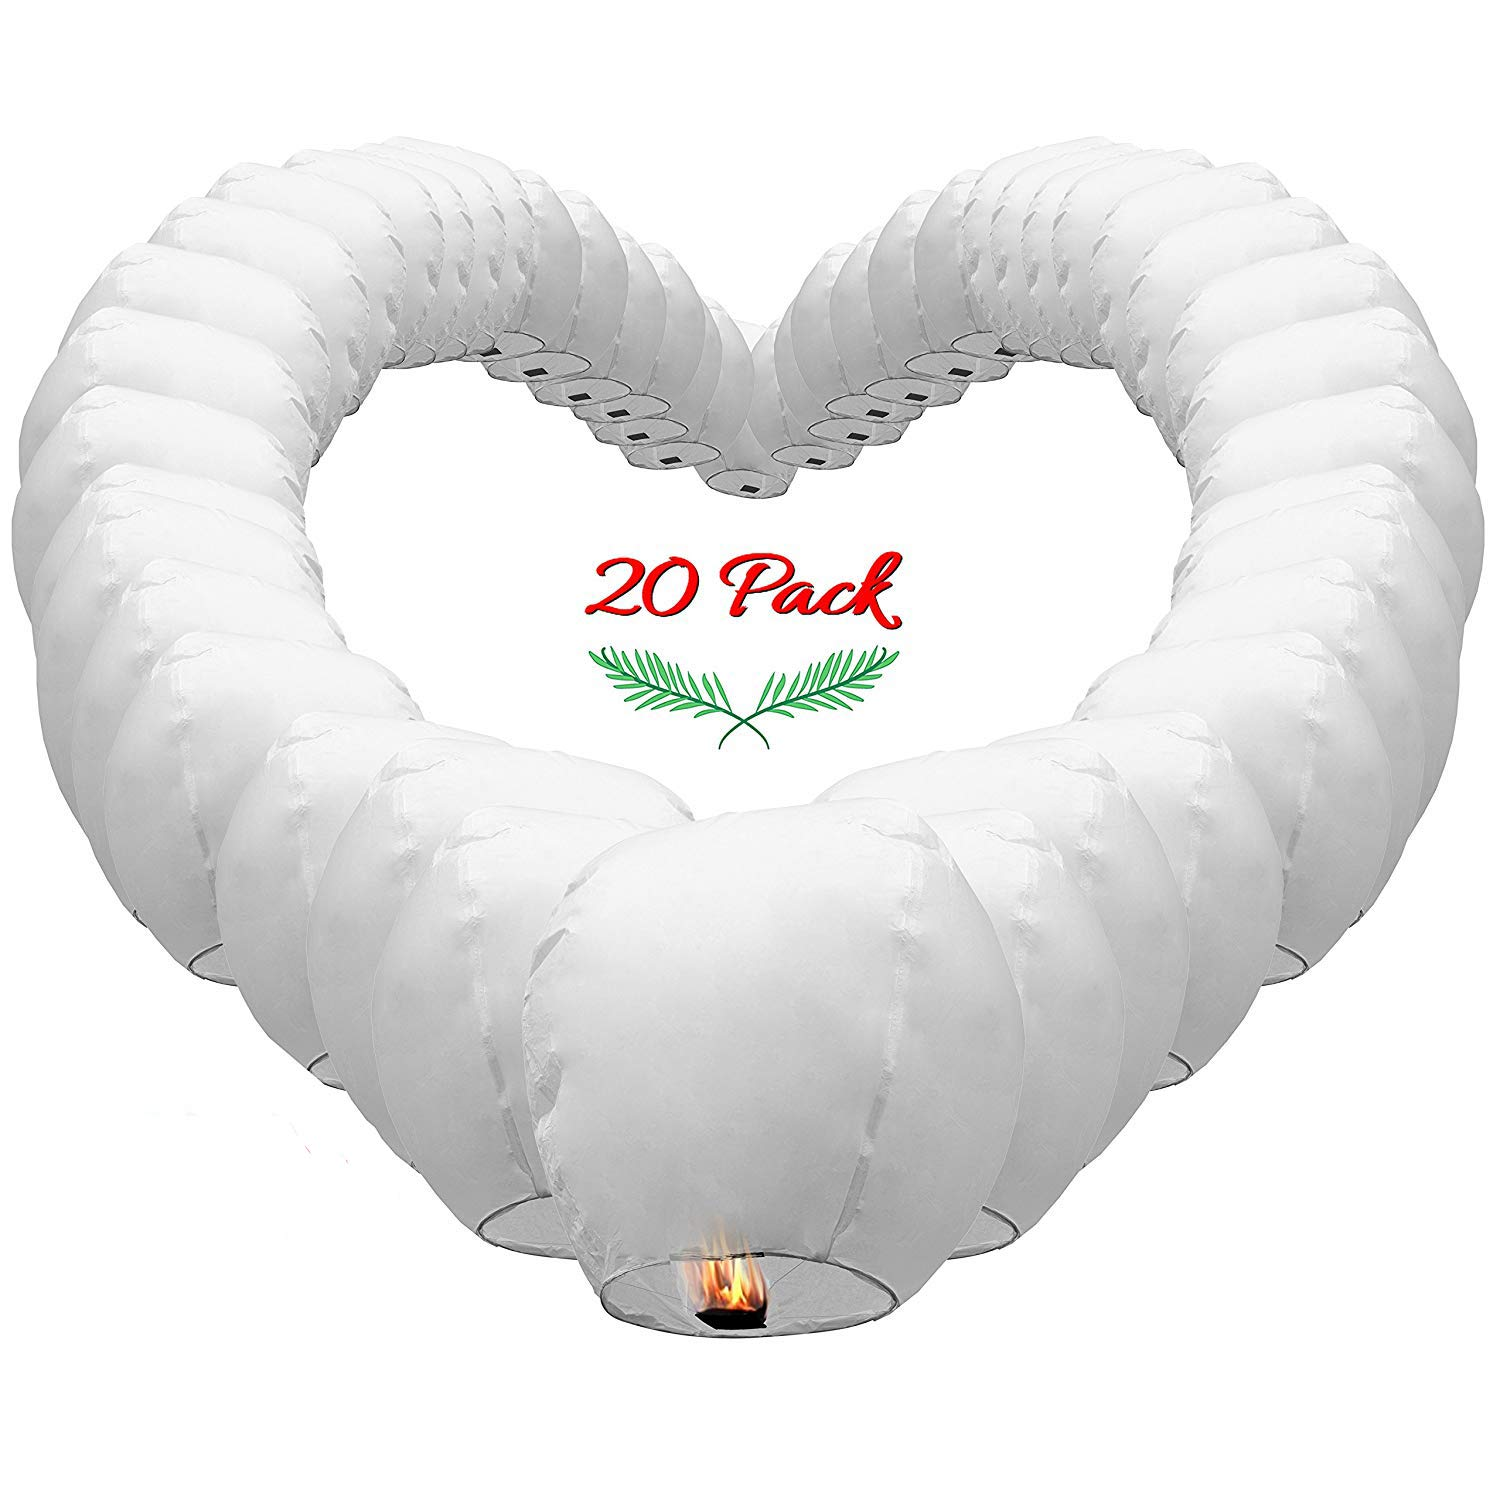 Chinese Sky Lanterns White Paper (20) Pack - Ready to Use and Eco Friendly - Extra Large - 100% Biodegradable Wire Free - Beautiful Lantern for Weddings, Chinese Festival, Memorials, etc.